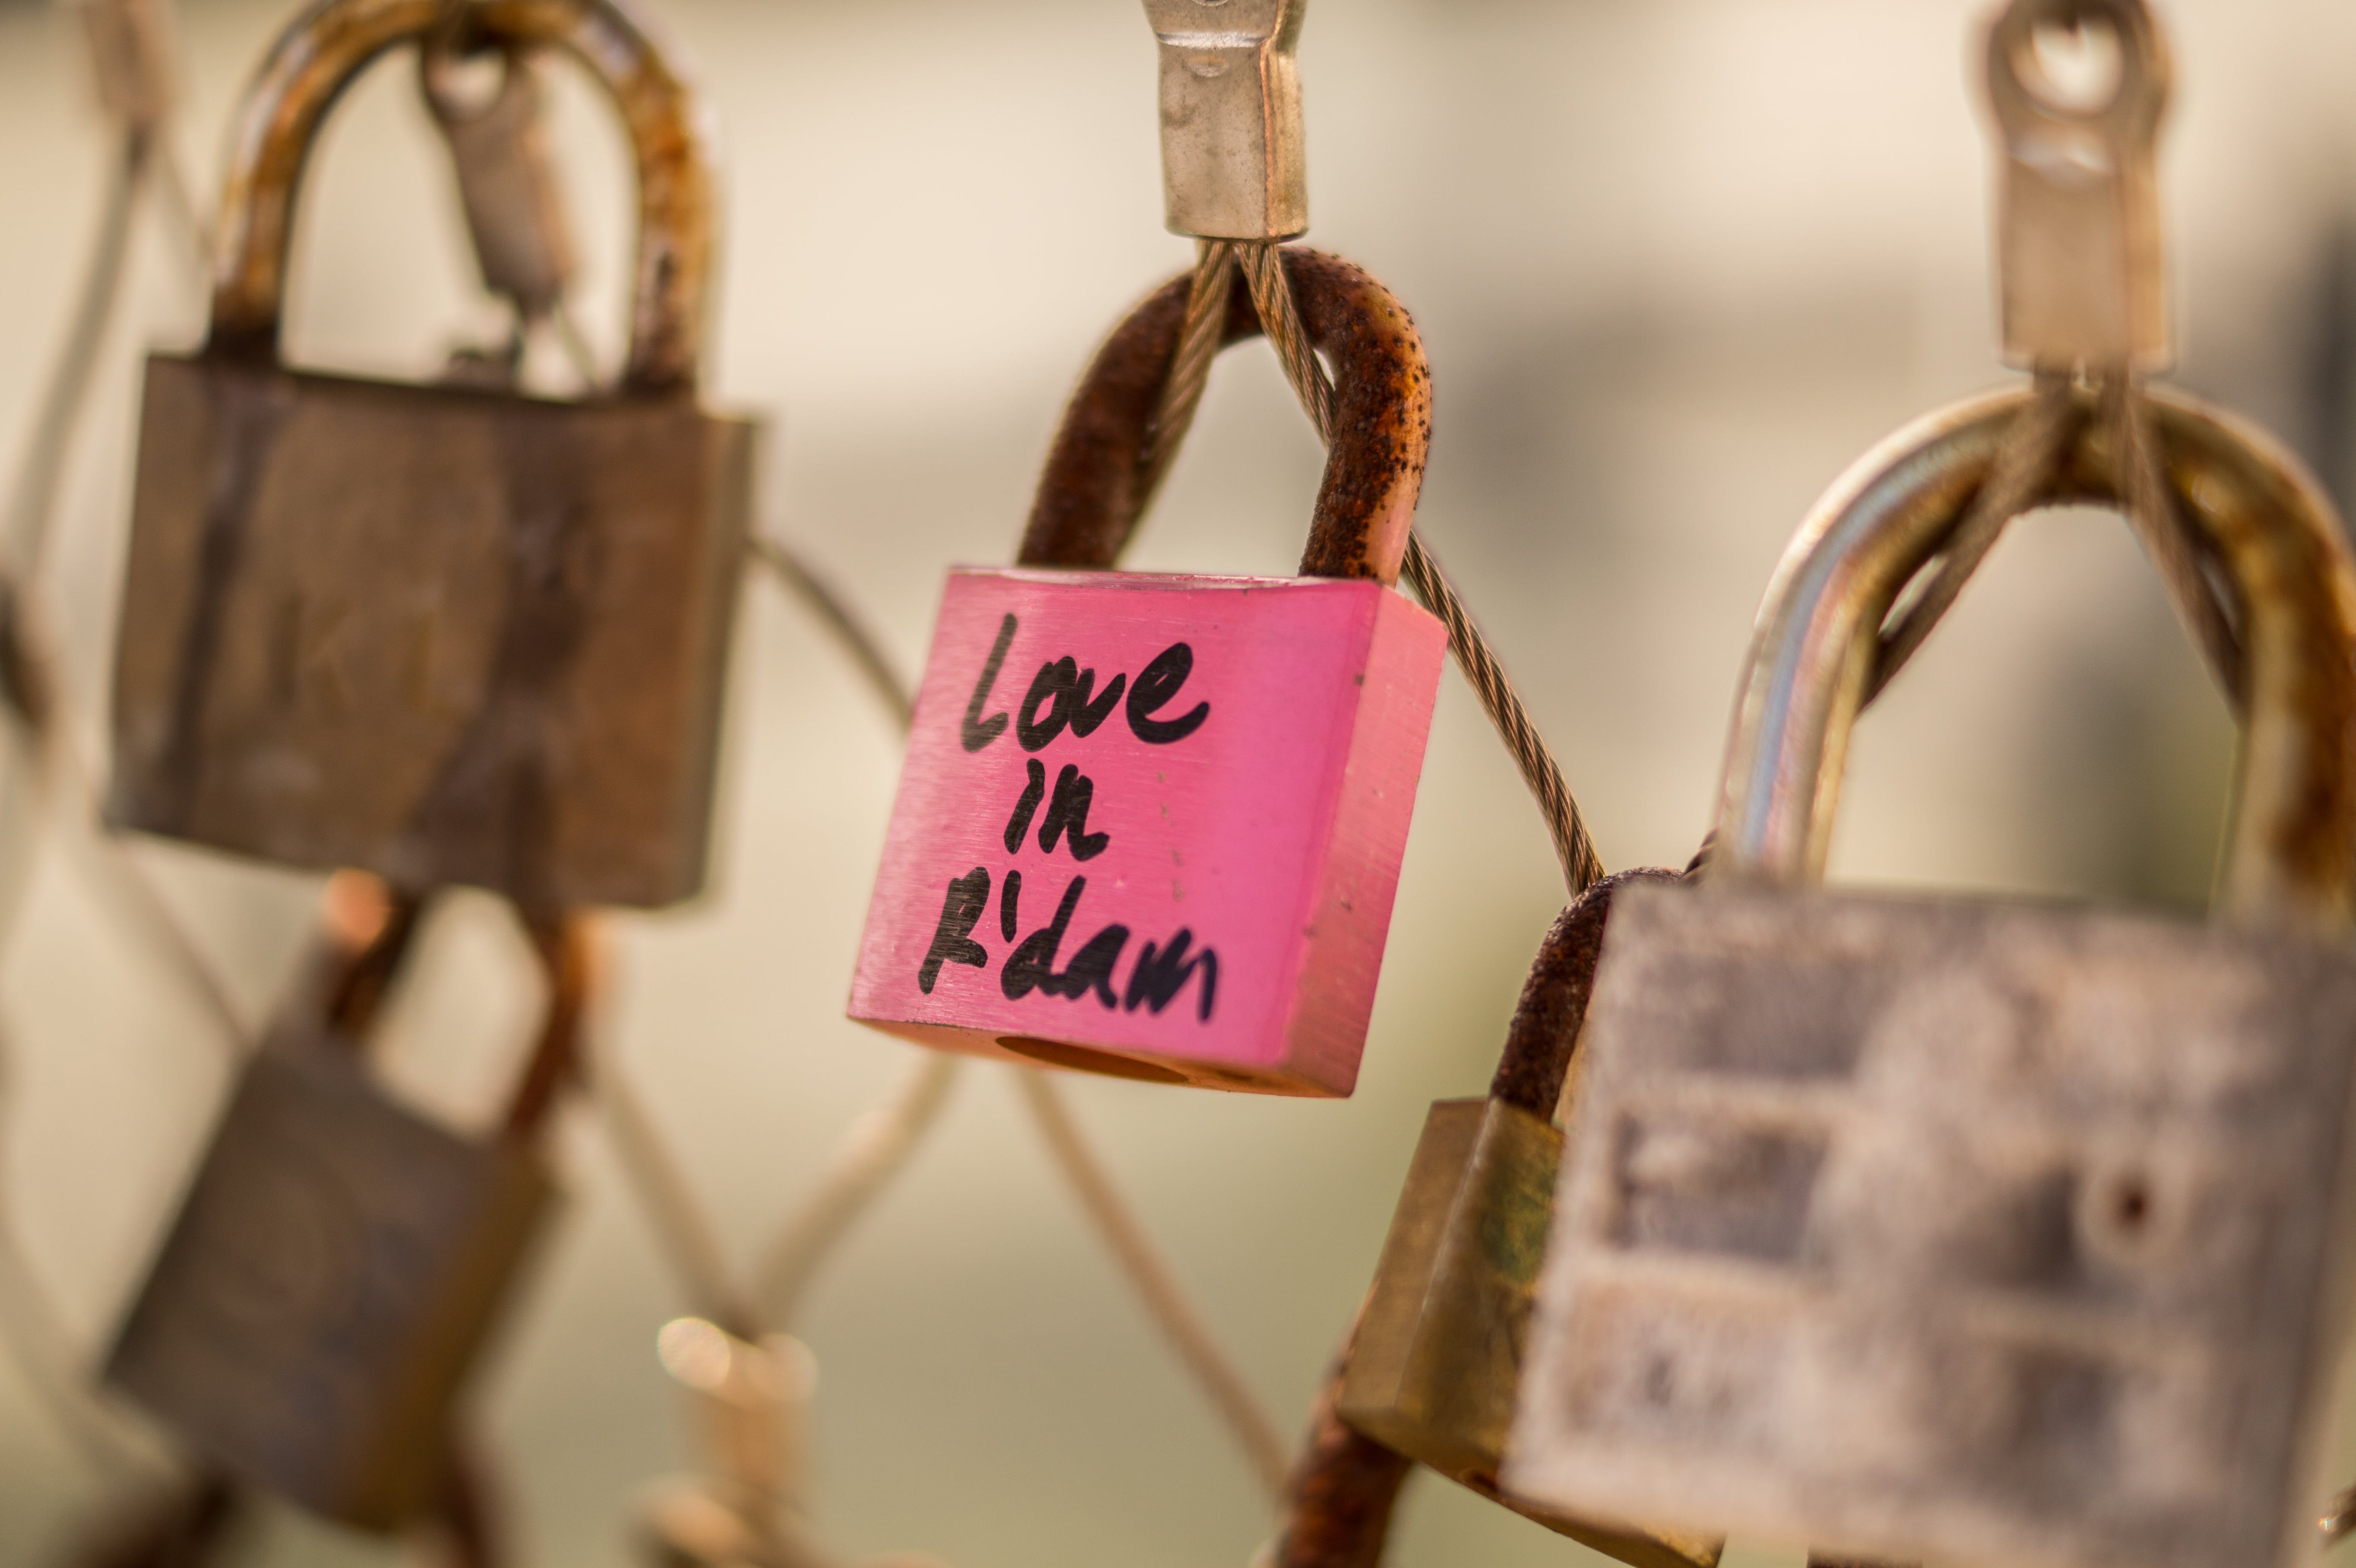 Selective Focus Photography of Pink and Gray Love in R'dan Padlock